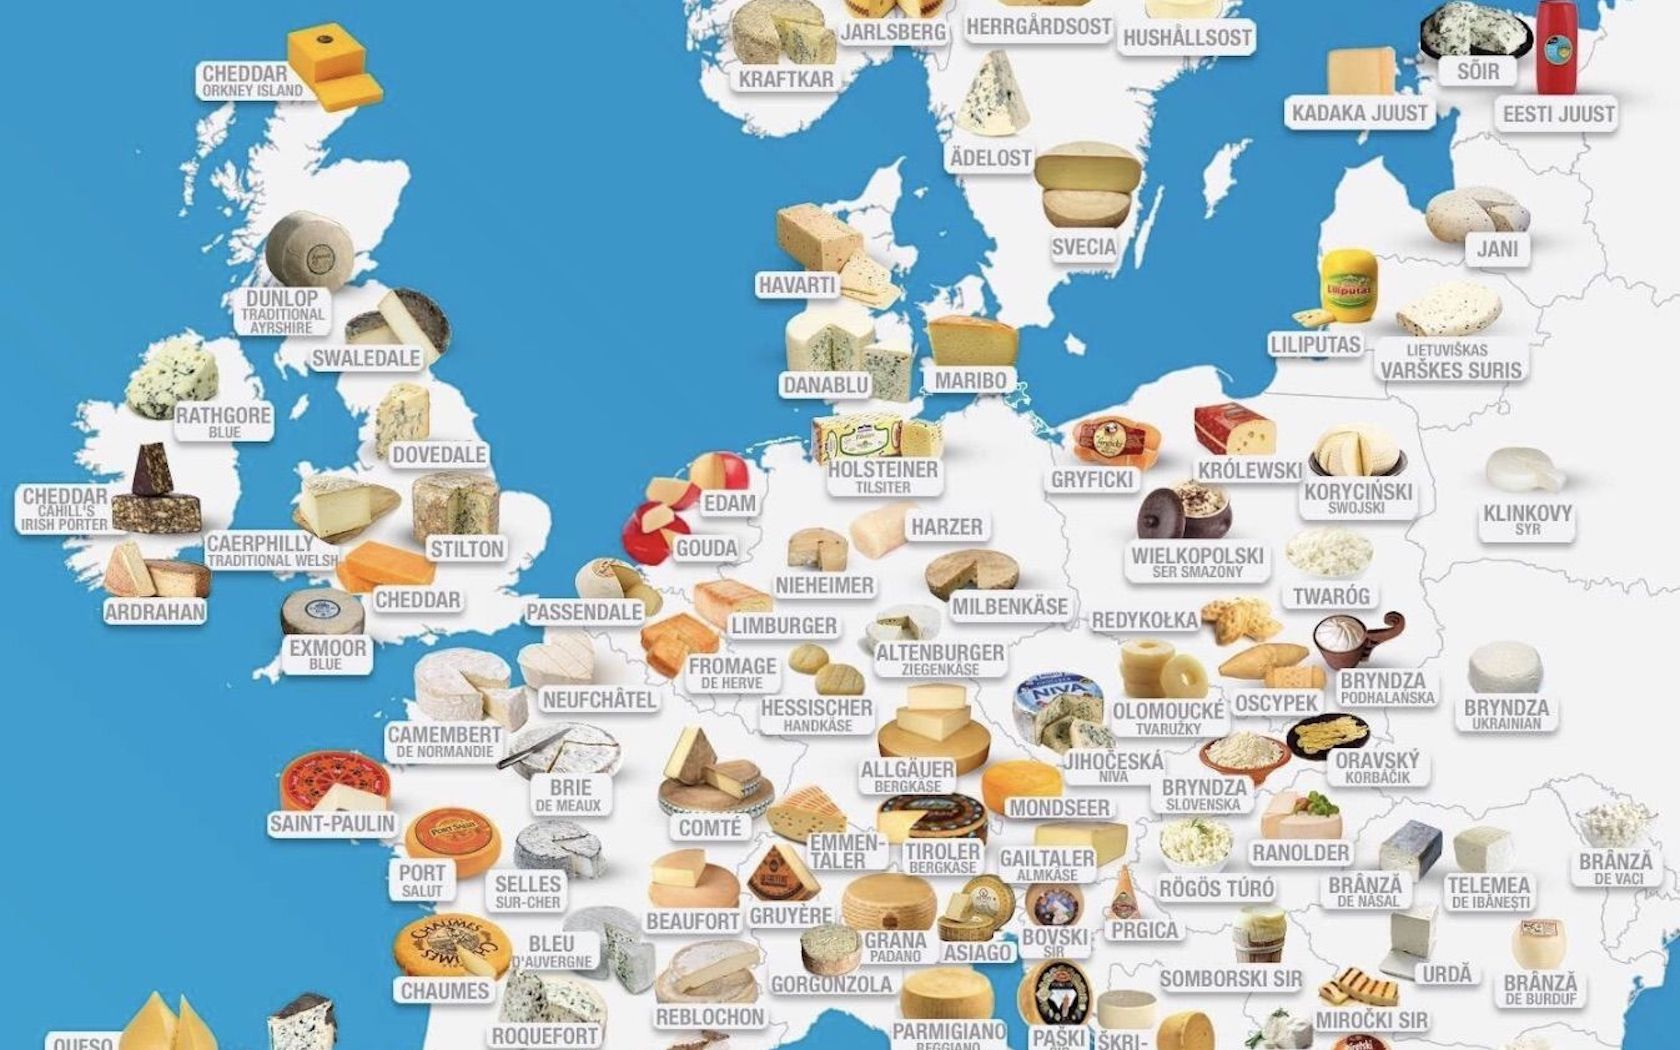 This Interactive Cheese Map Shows The Most Popular Cheese In Europe